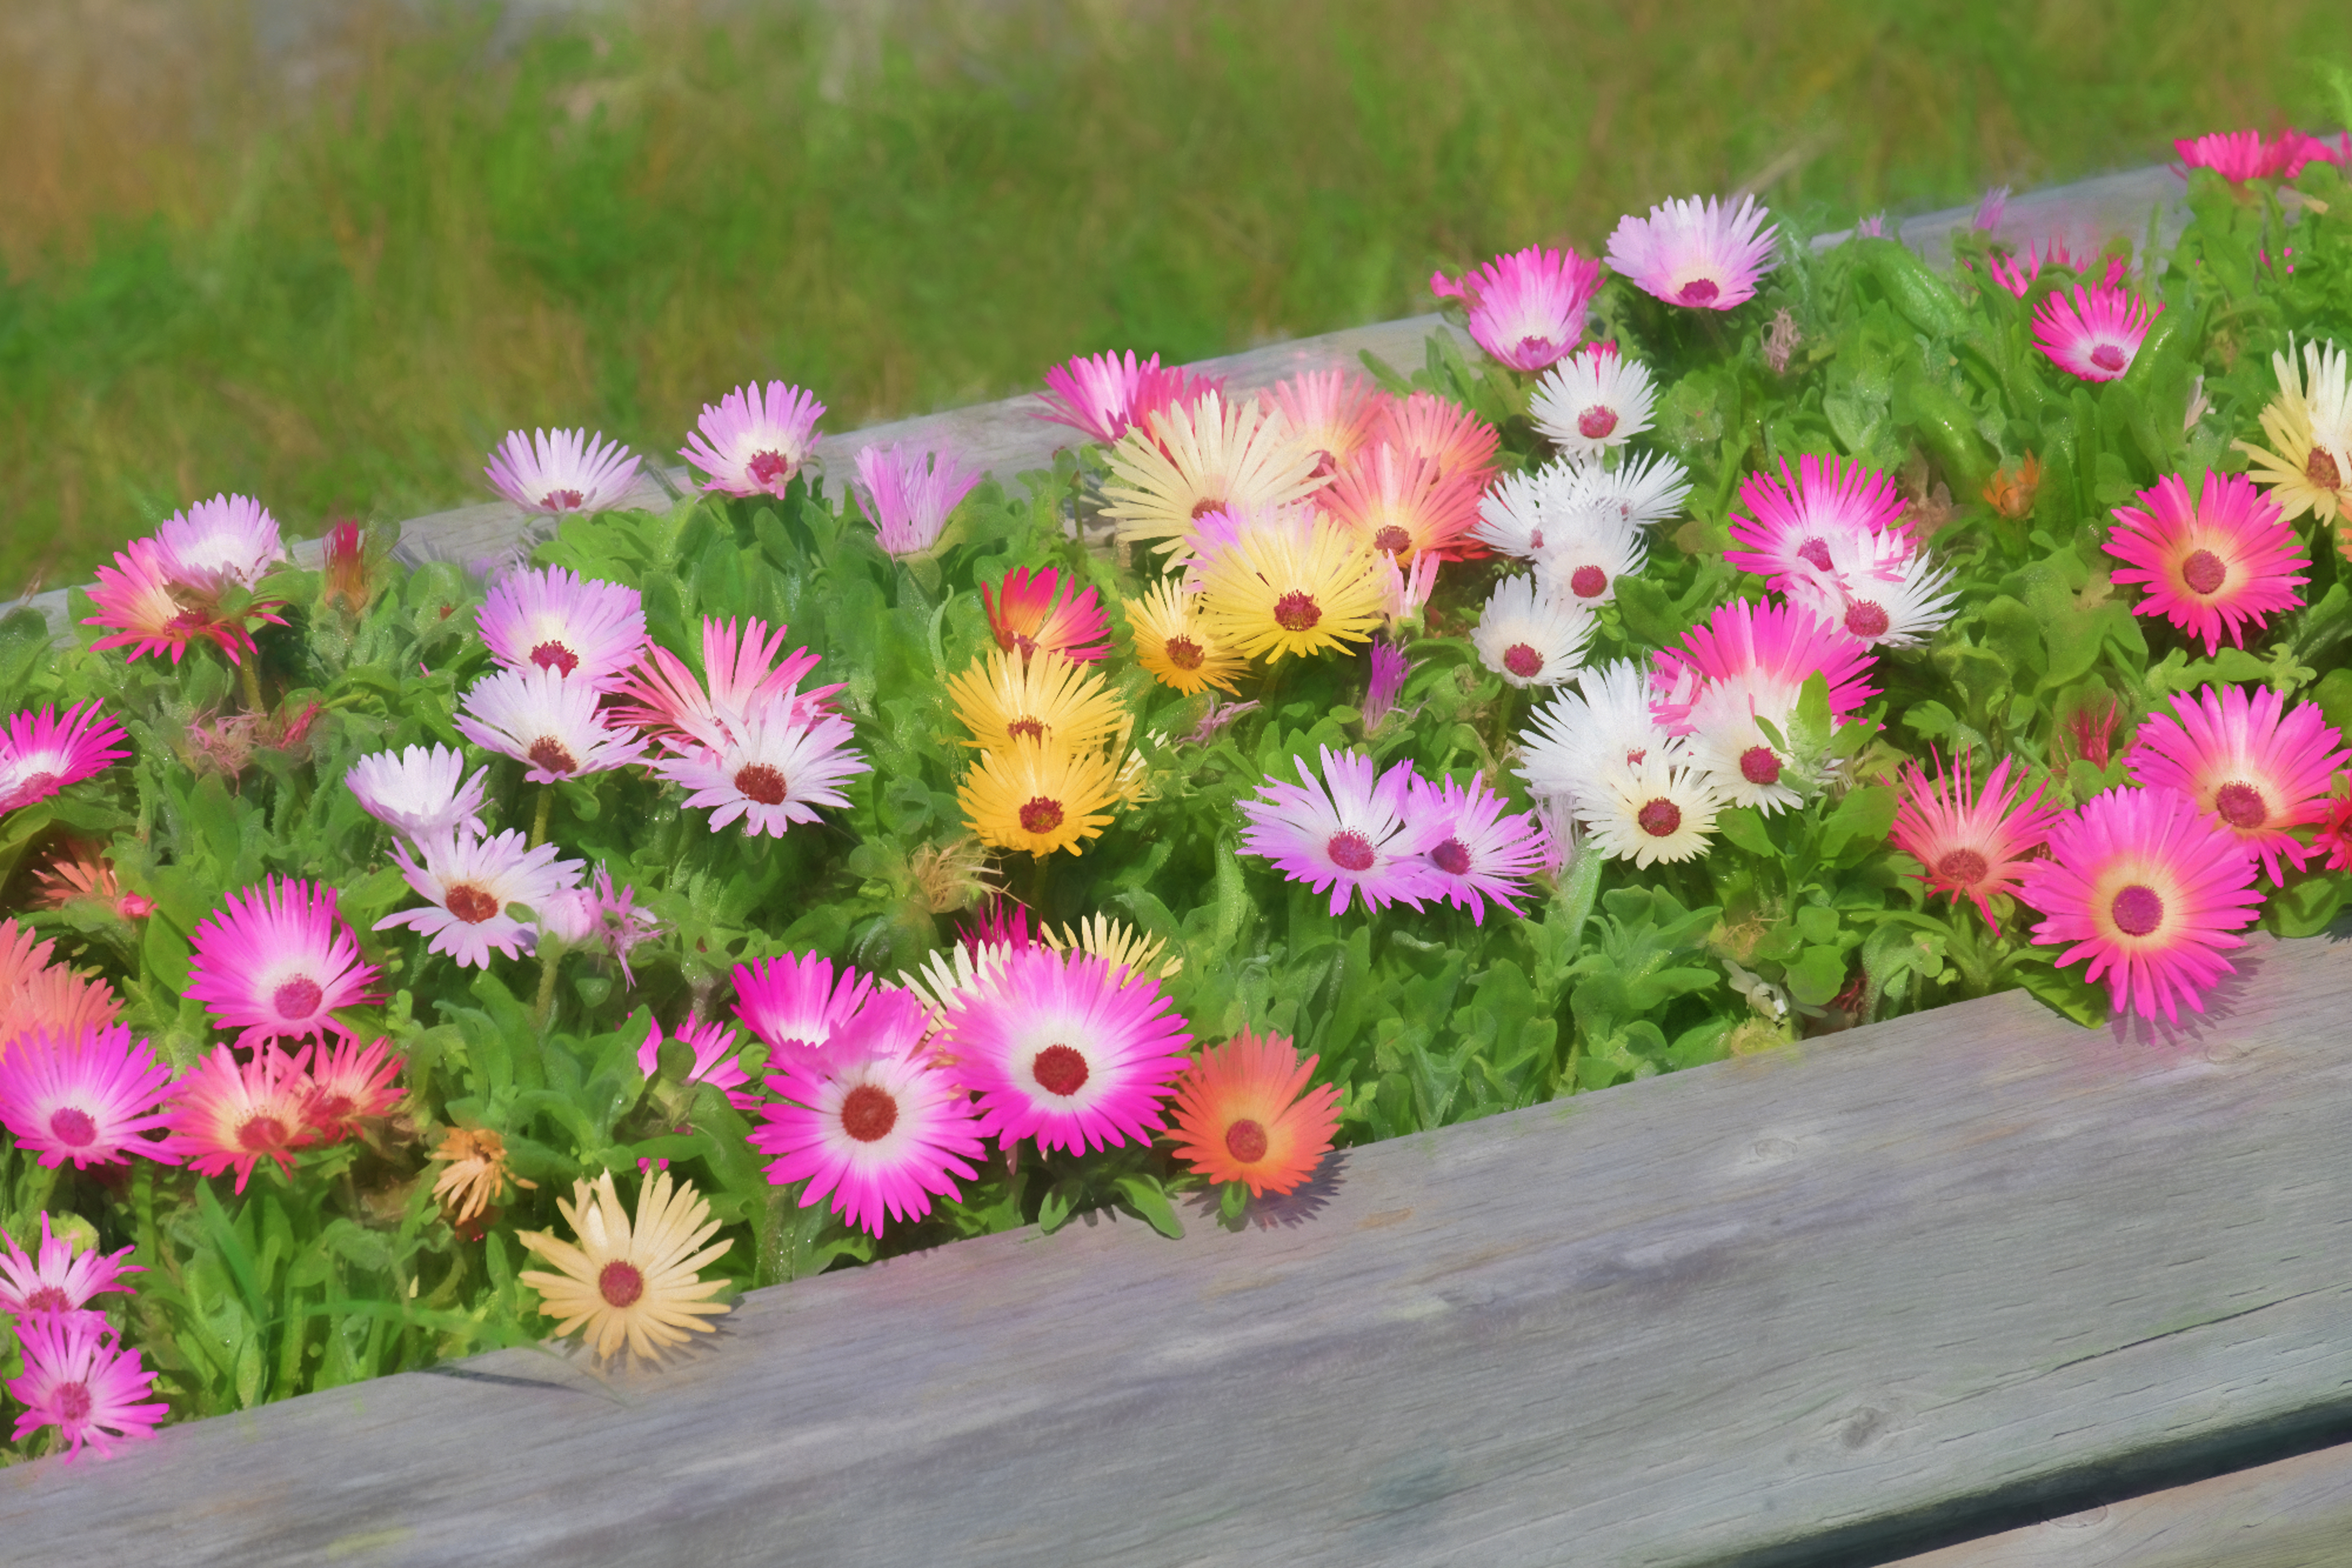 Old Day's Pond Flowers-